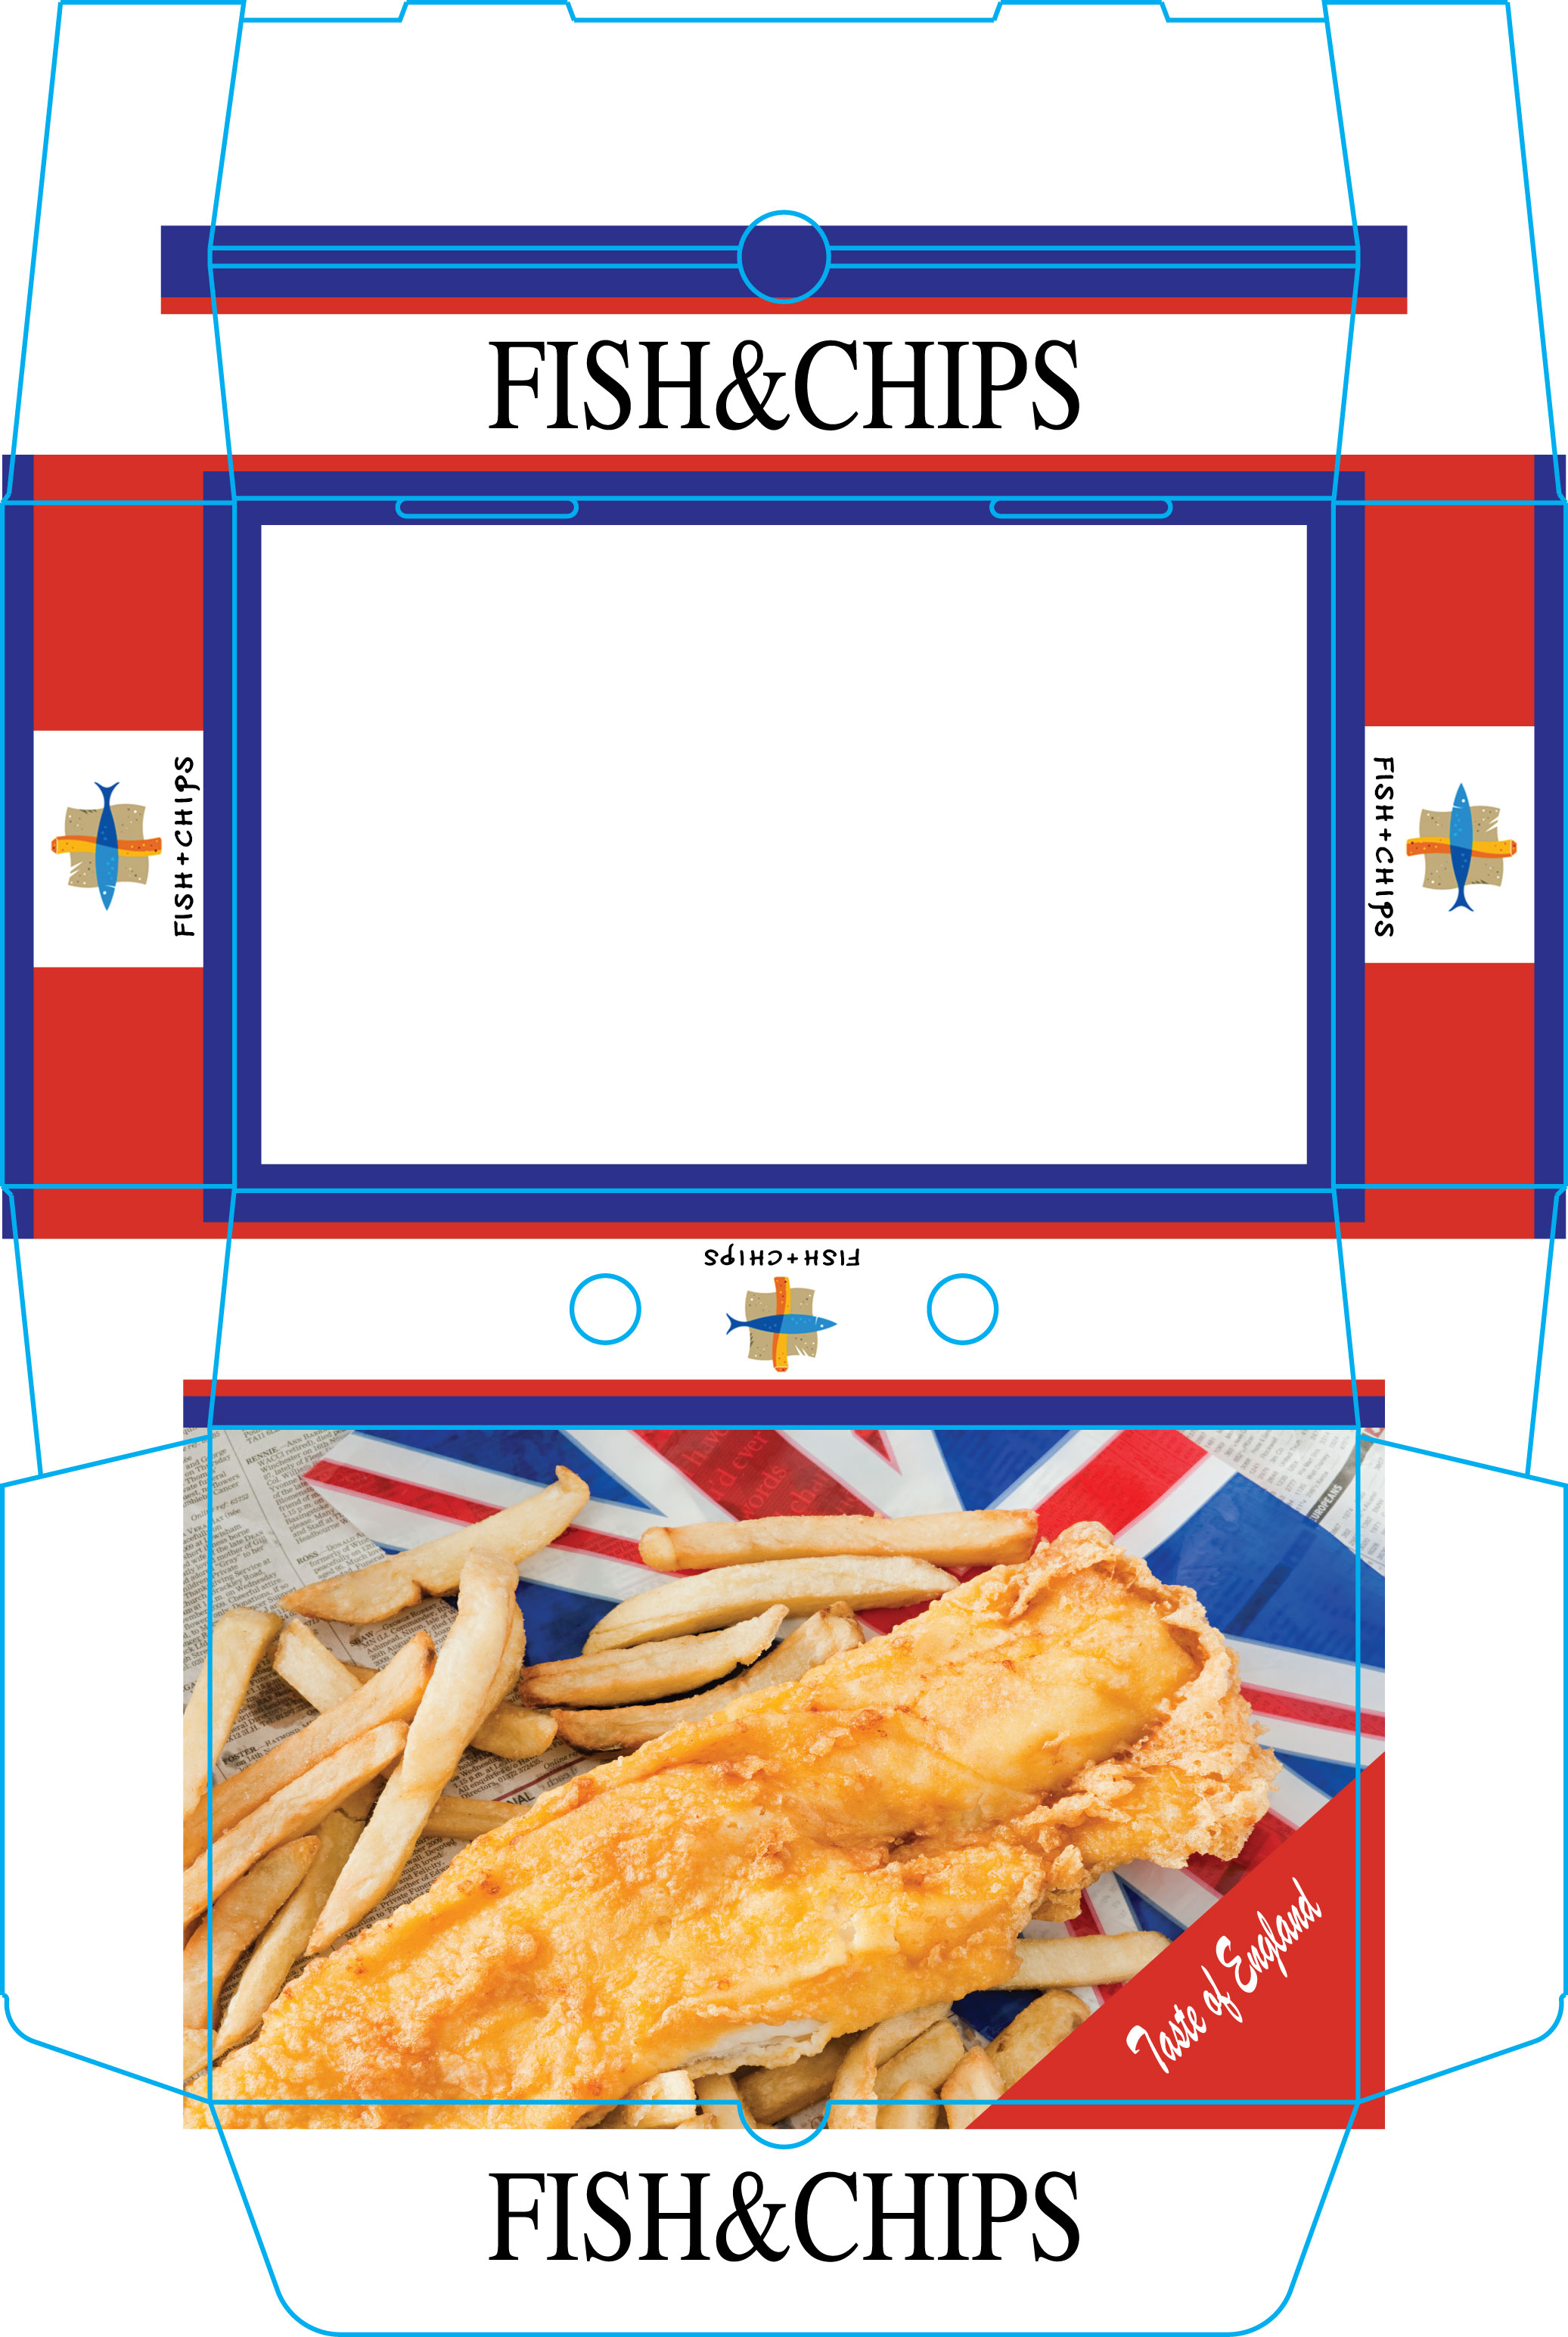 fish-chips-uk-flag